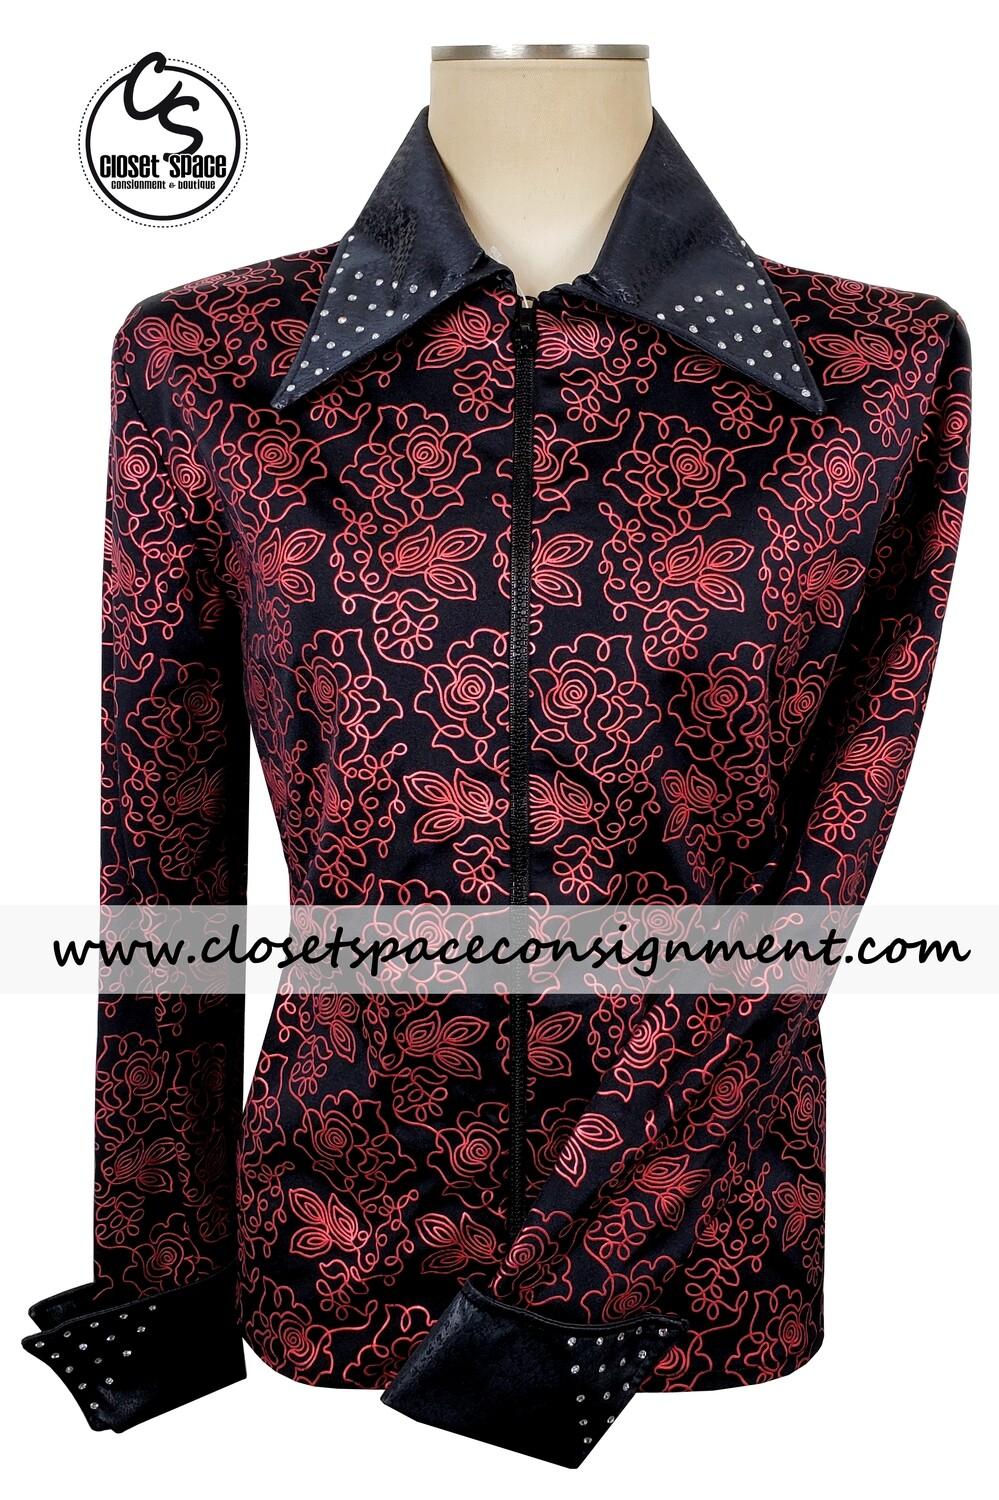 'Designs For Winners' Black & Red Floral Jacket